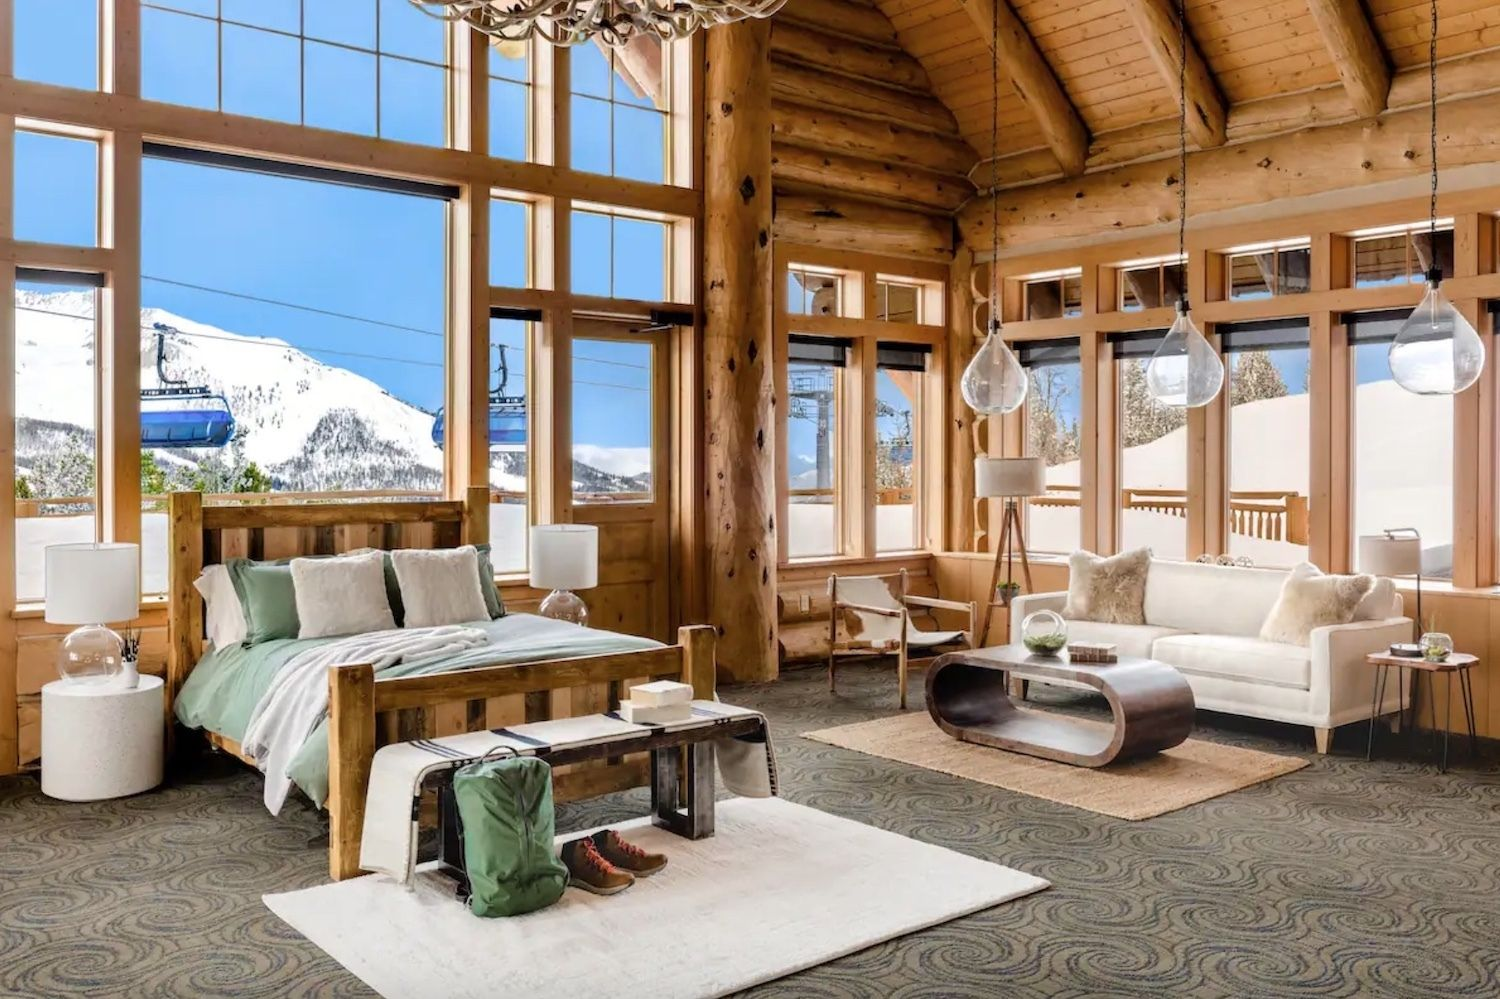 Airbnb Andesite Mountain in Big Sky, Montana parallel view of bedroom and living room, airbnb montana mountain stay